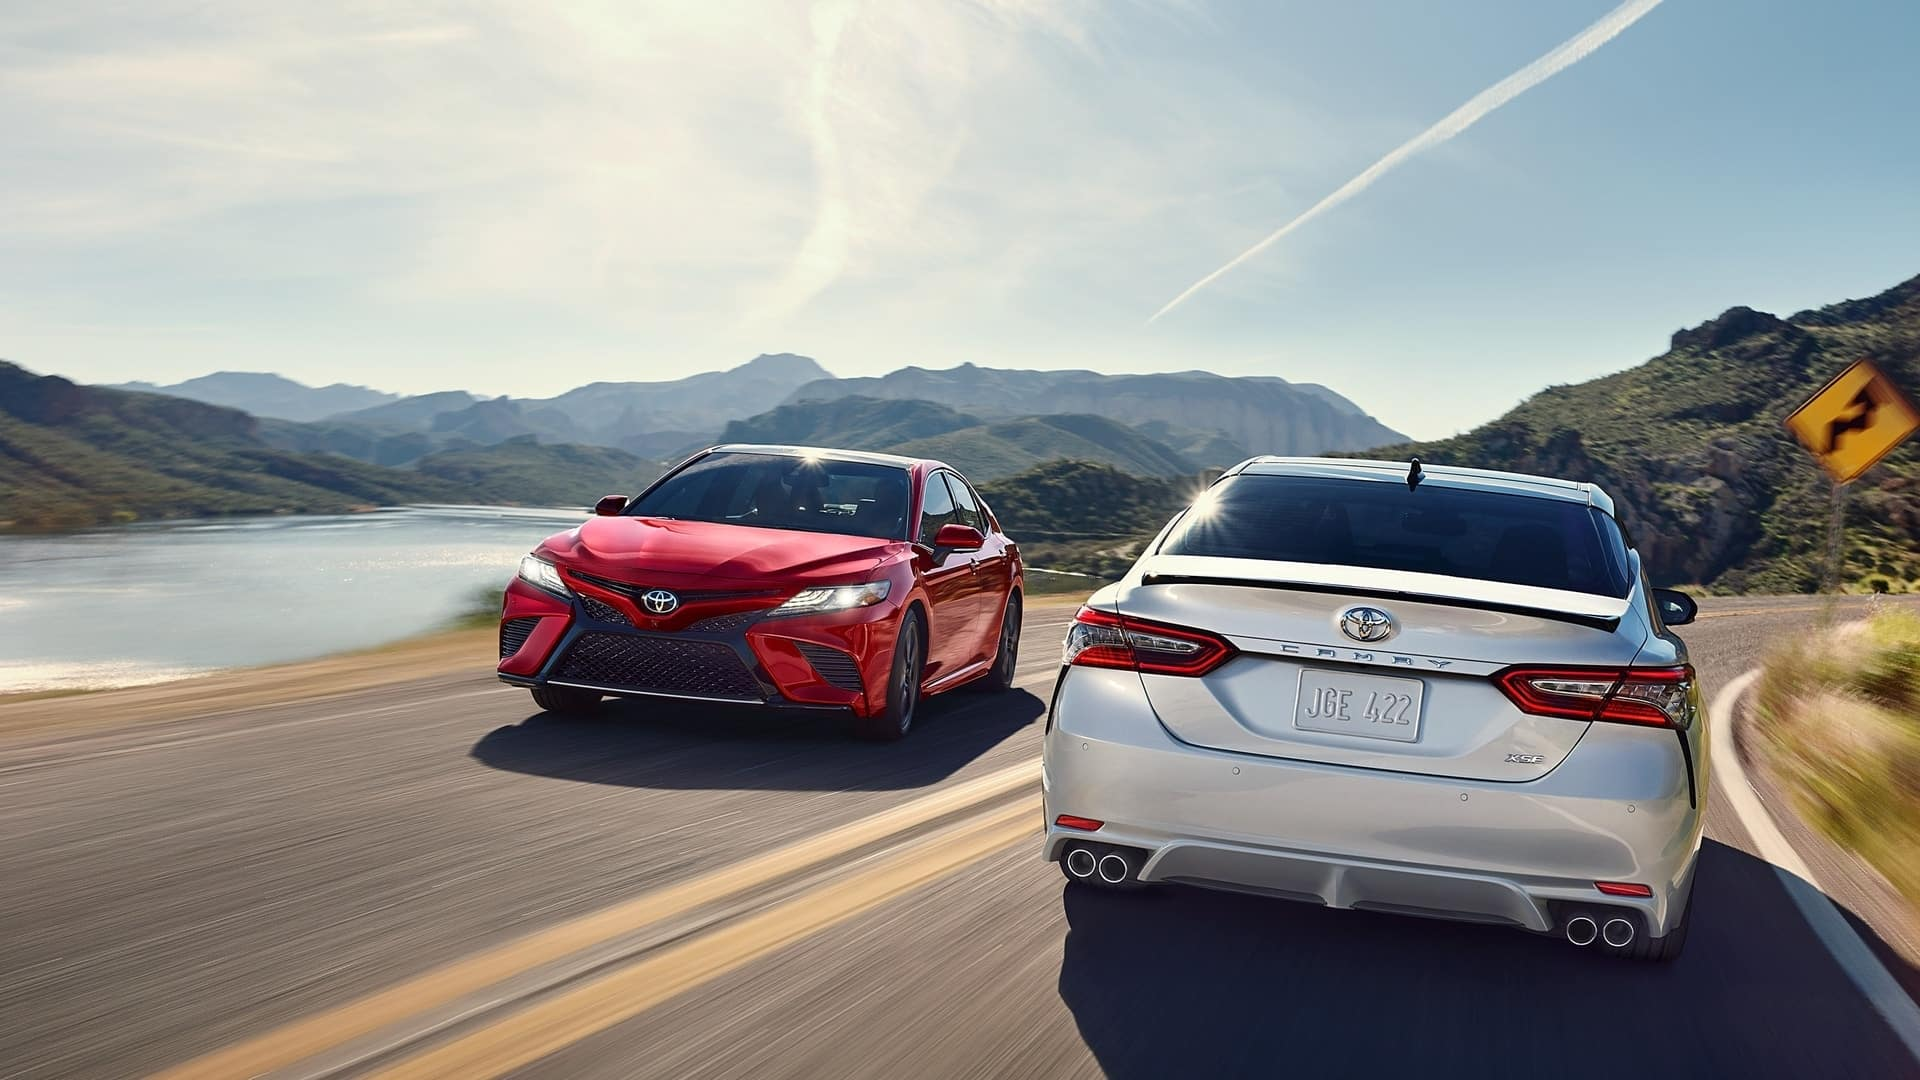 Test drive the 2020 Toyota Camry near South Kingstown RI